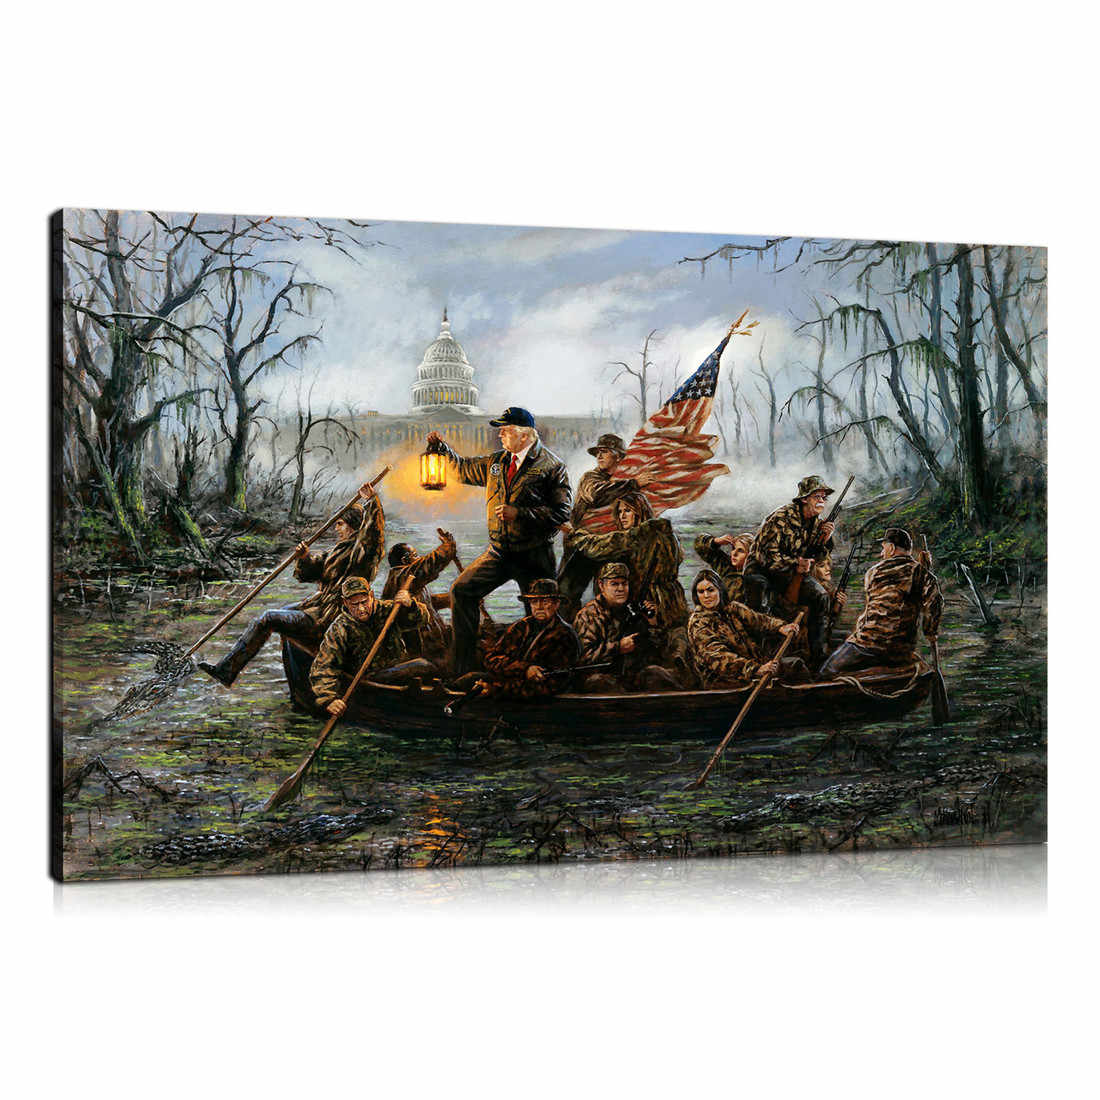 Trump ,Crossing ,The Swamp 1P Paintings Print on Canvas HD Abstract Canvas Painting Office Wall Art Home Decor Wall Pictures